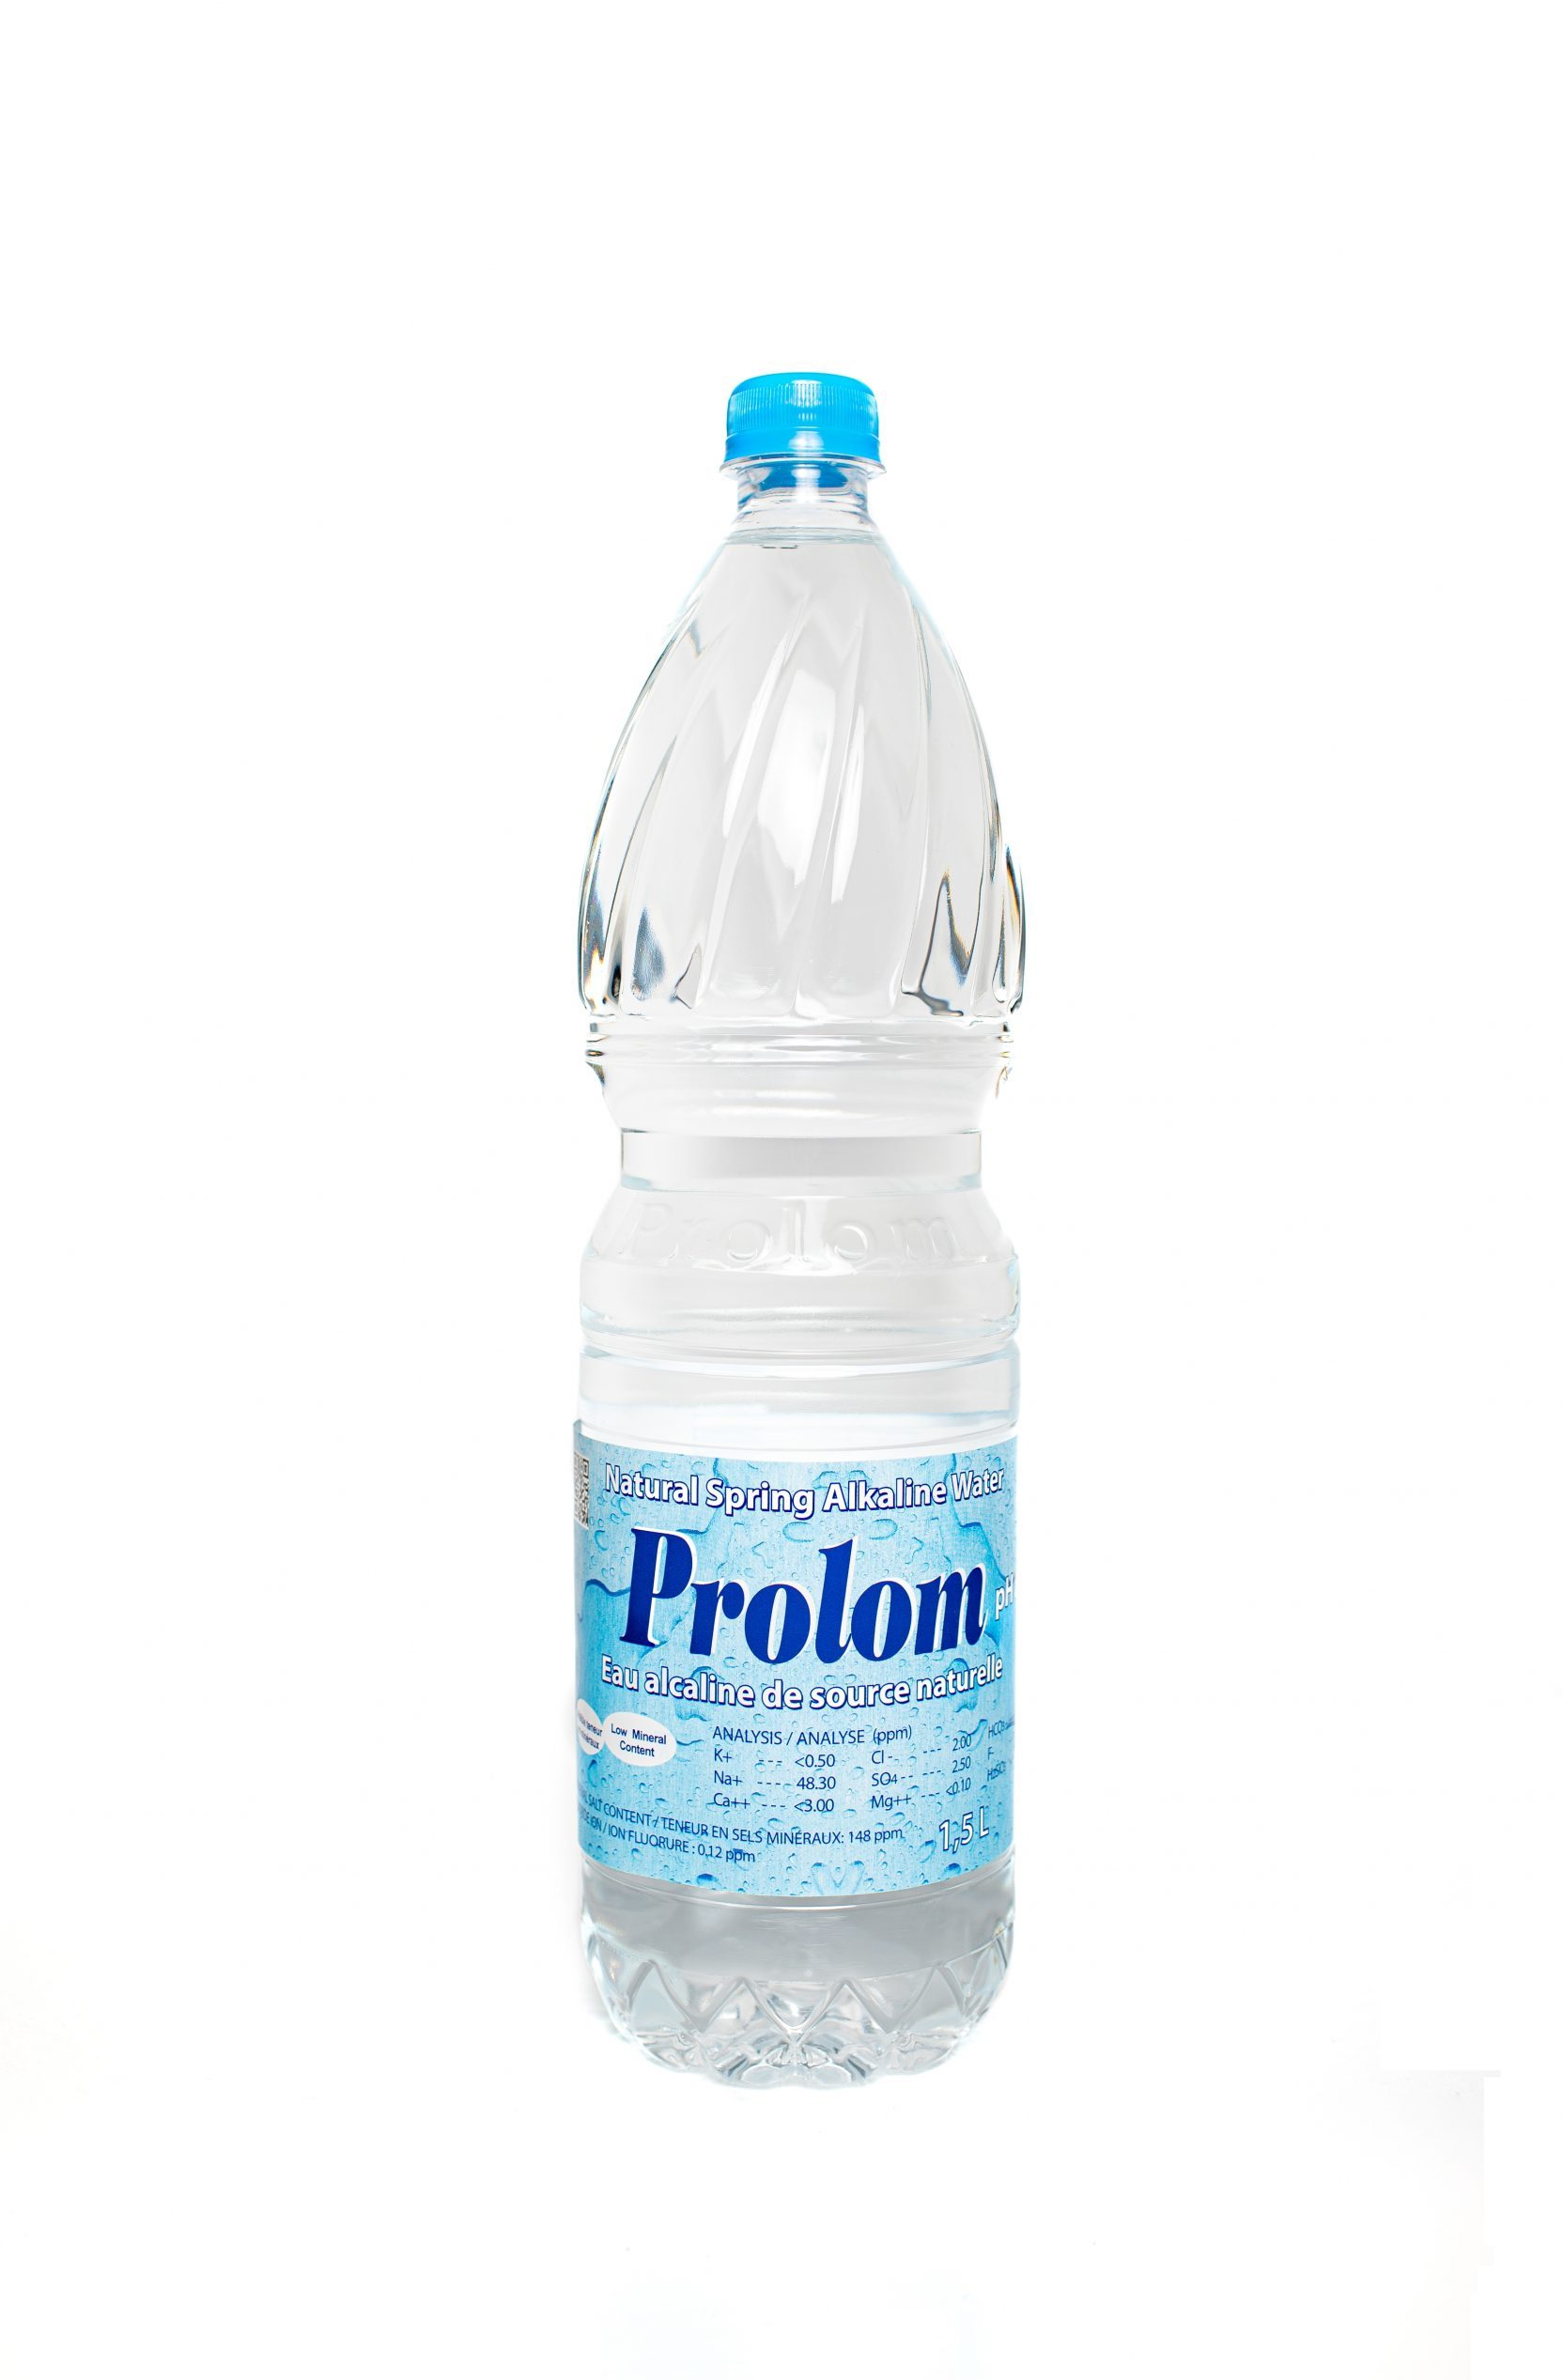 Prolom water – 1.5L | 6 pack